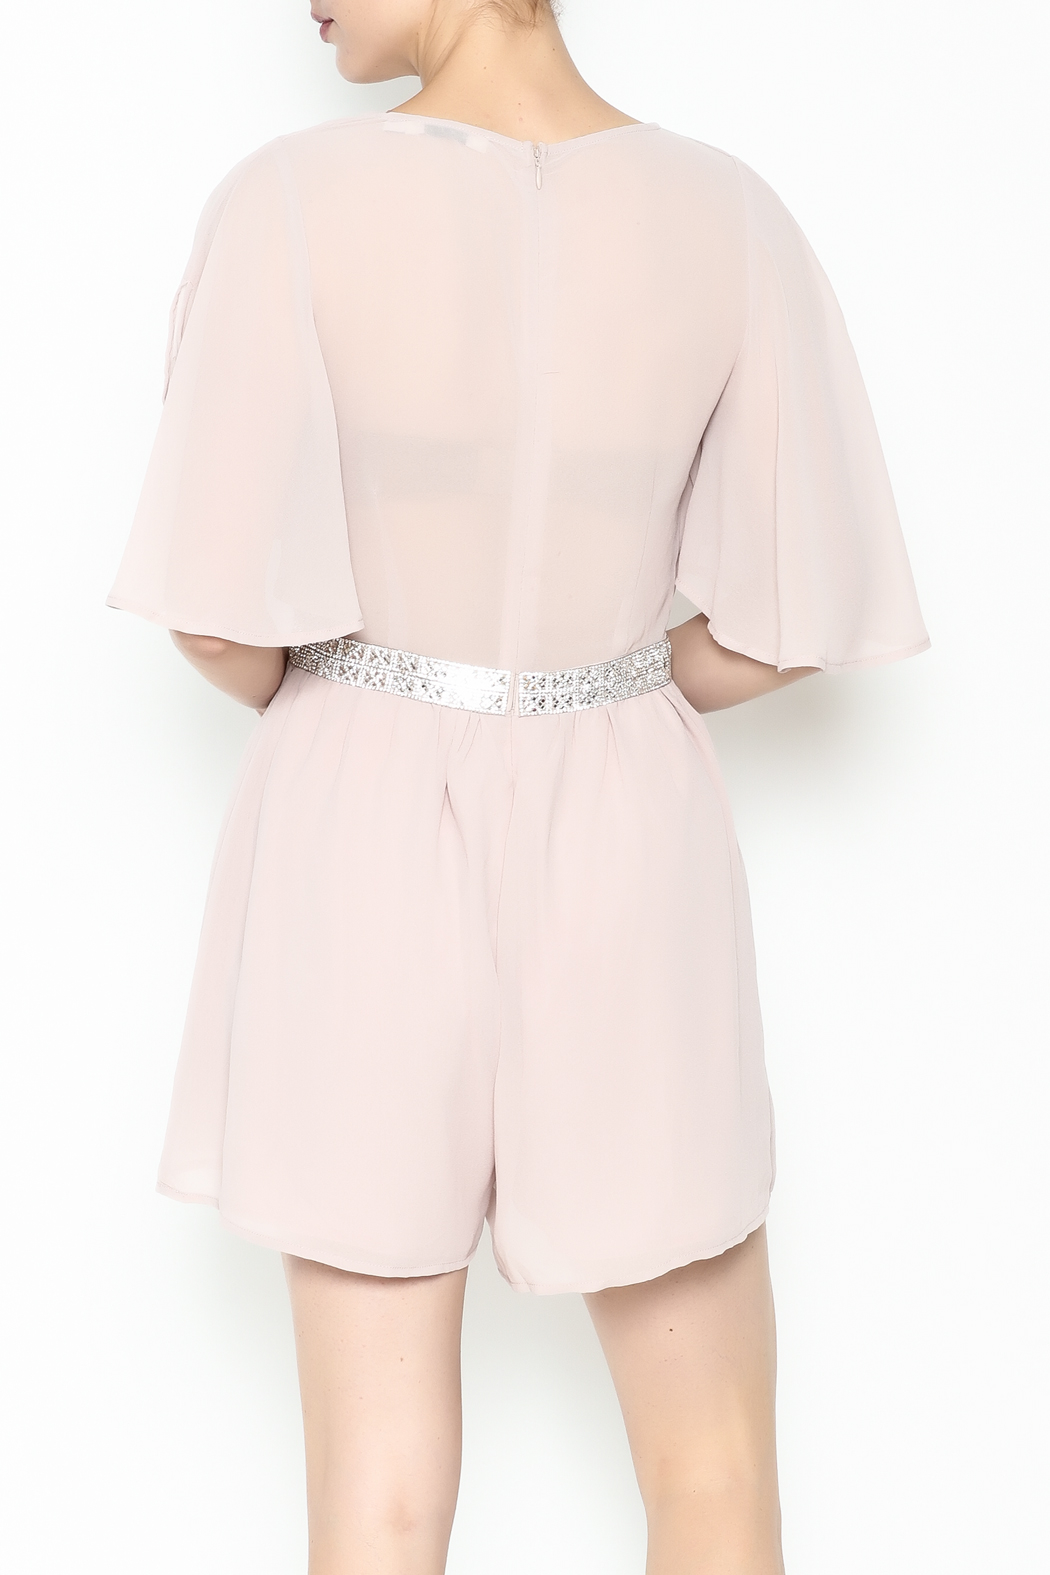 Ark & Co. Jewel Waist Romper - Back Cropped Image